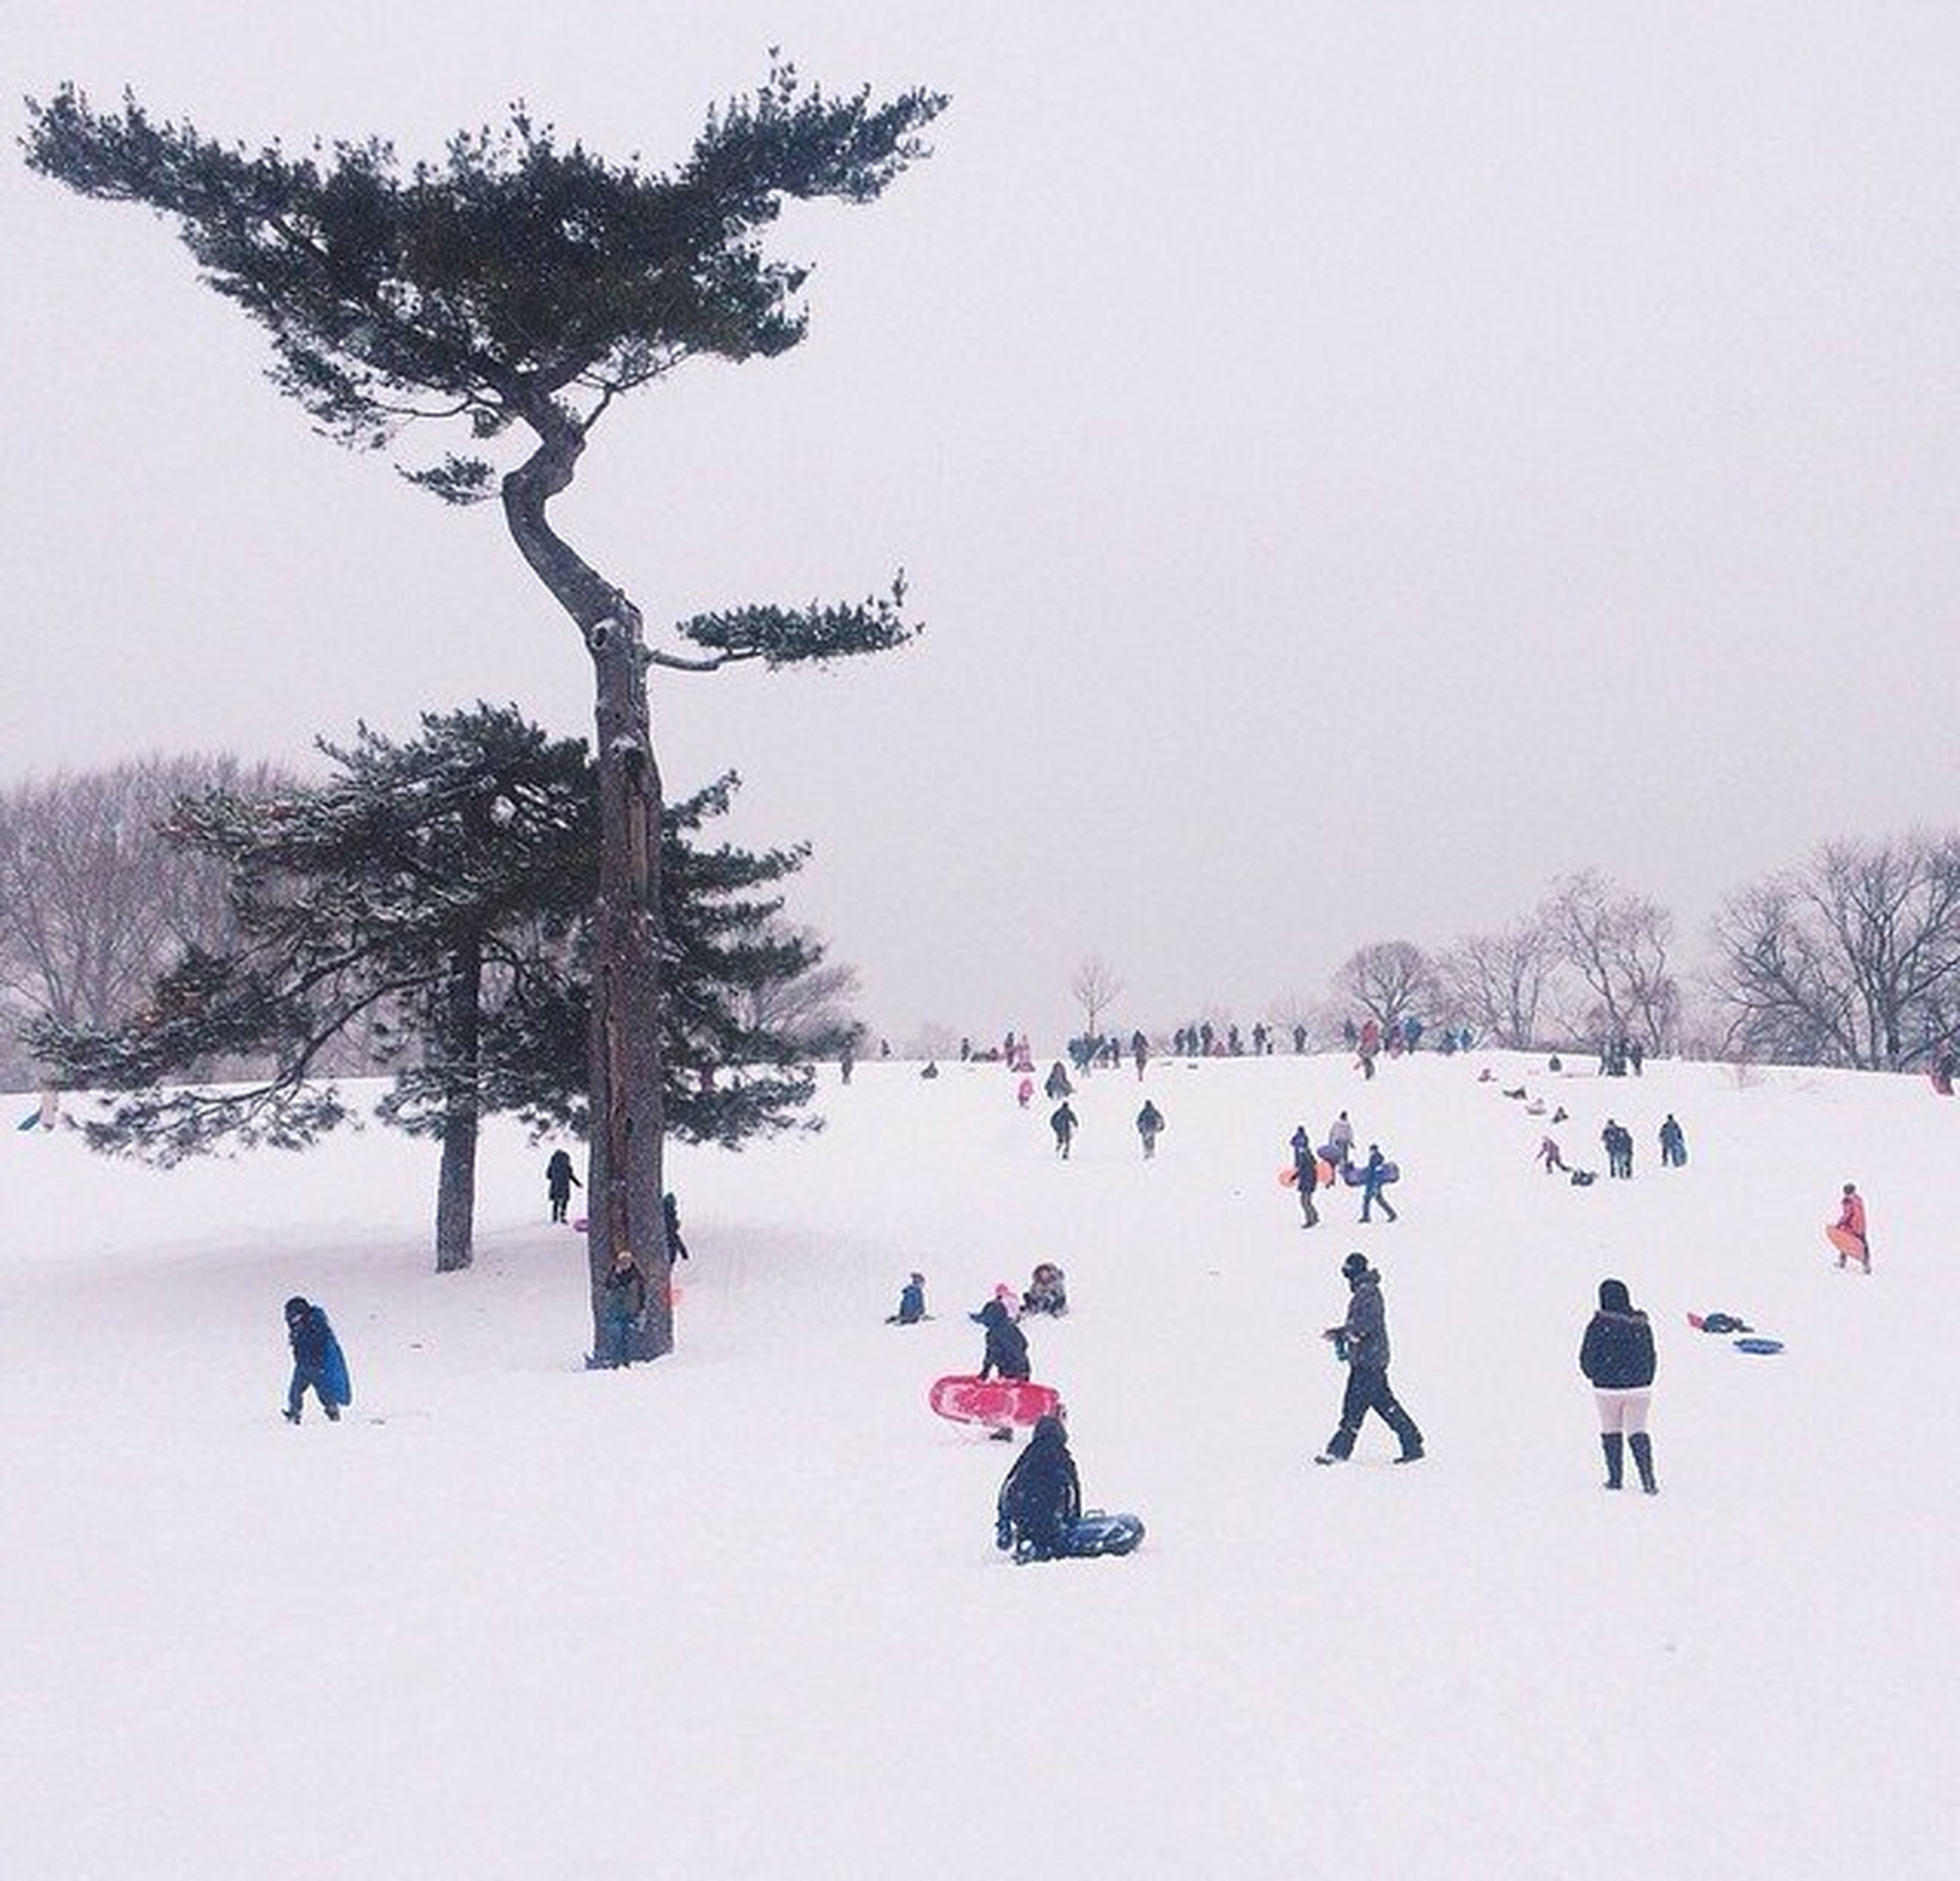 snow, winter, cold temperature, season, weather, tree, leisure activity, lifestyles, clear sky, landscape, large group of people, men, nature, covering, vacations, tranquility, field, copy space, enjoyment